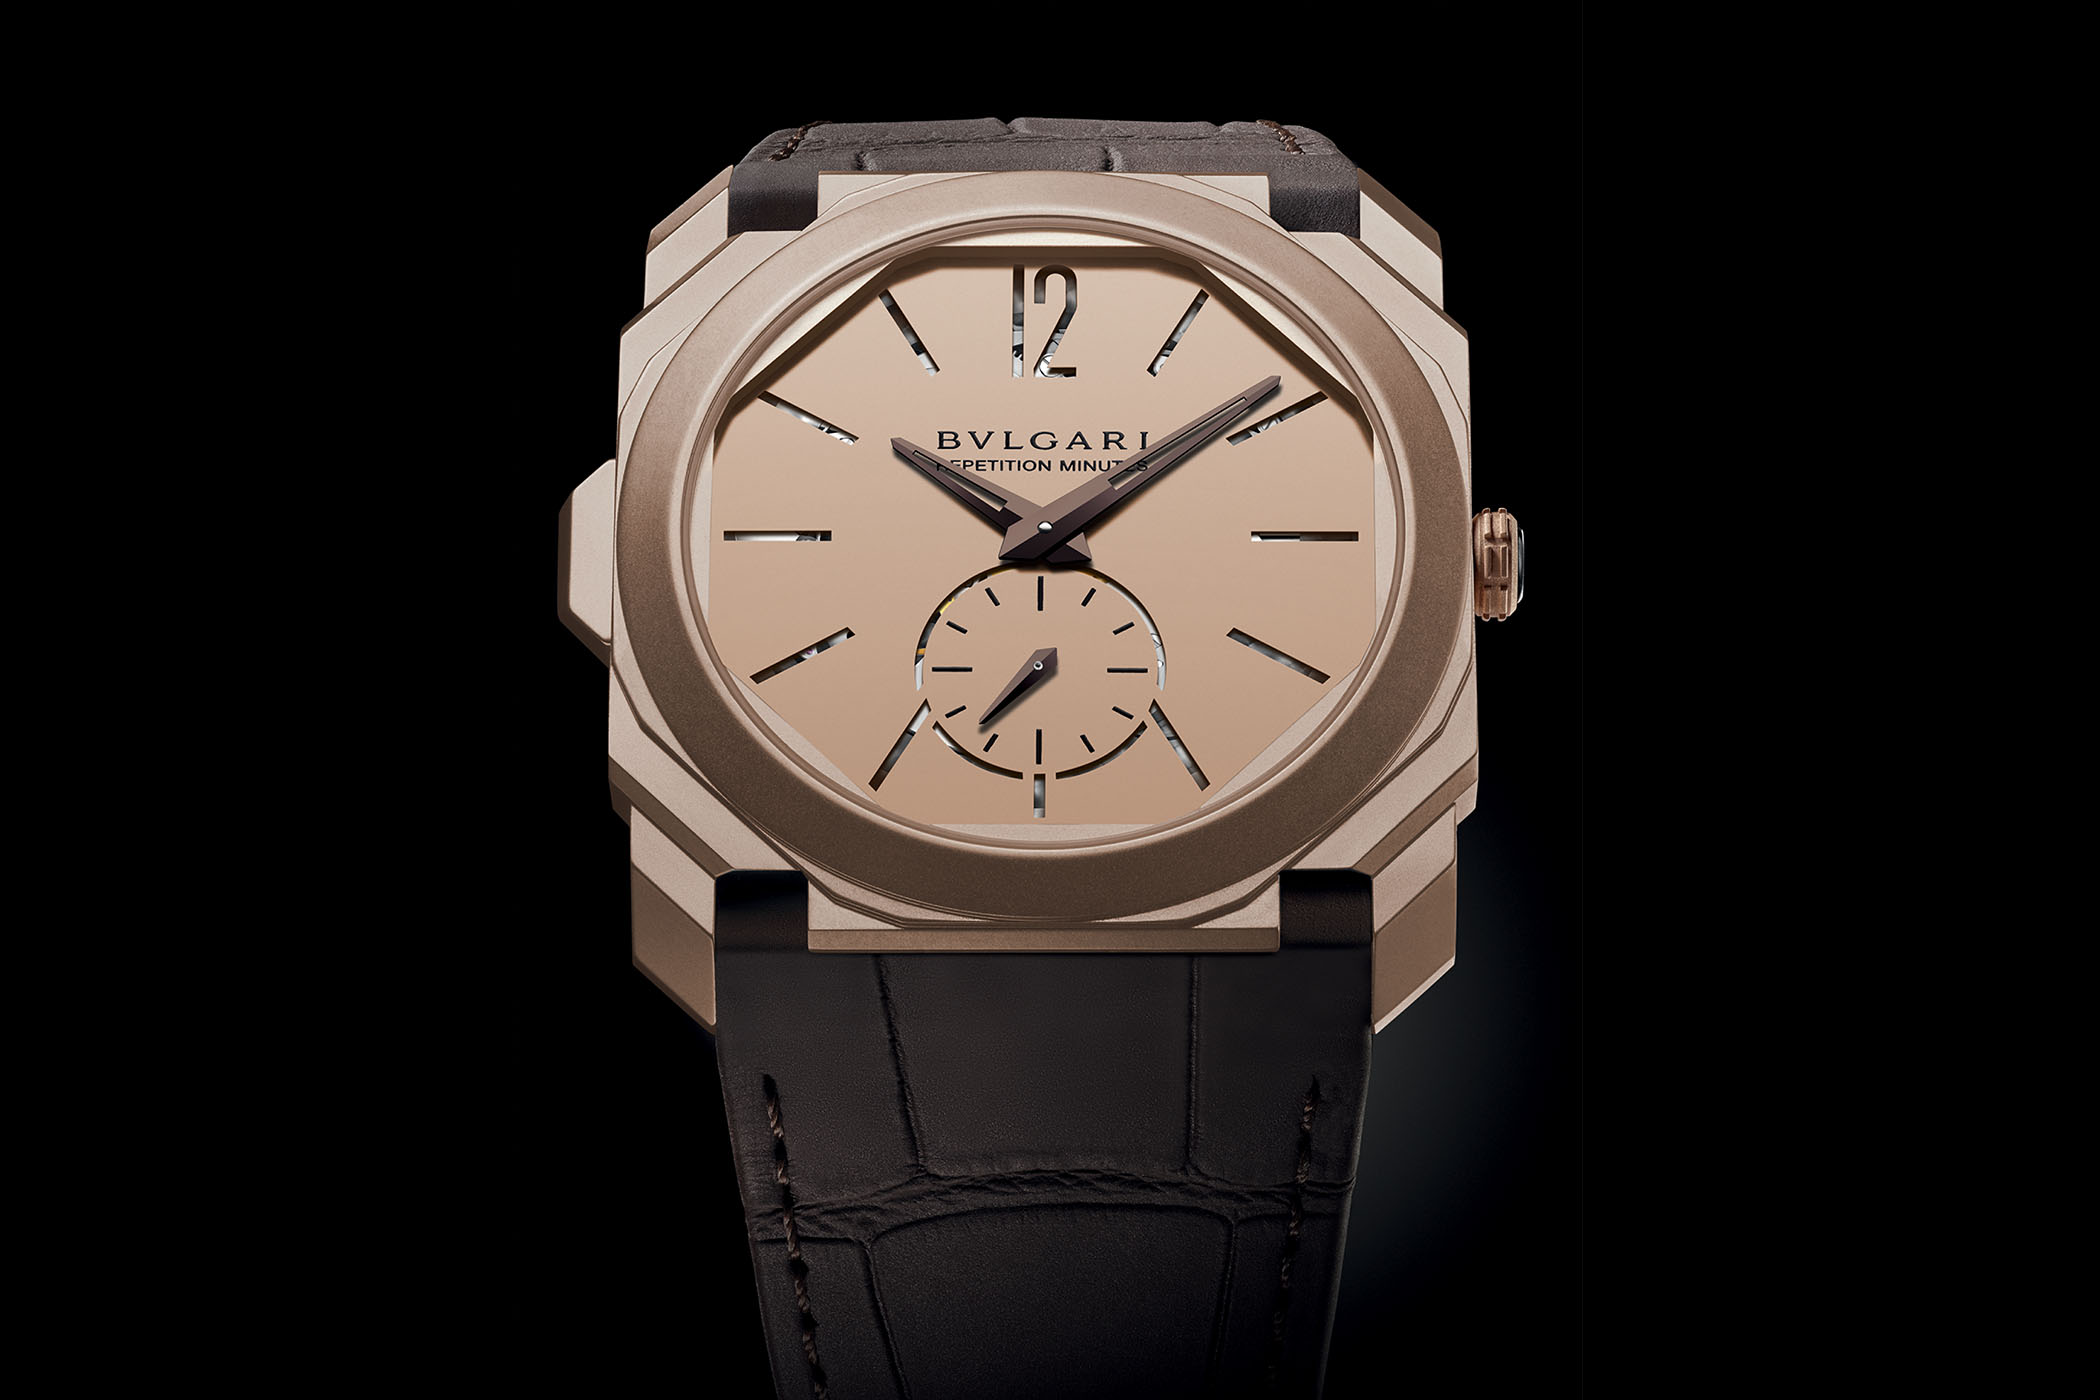 Bvlgari Octo Finissimo Minute Repeater Rose Gold Sandblasted